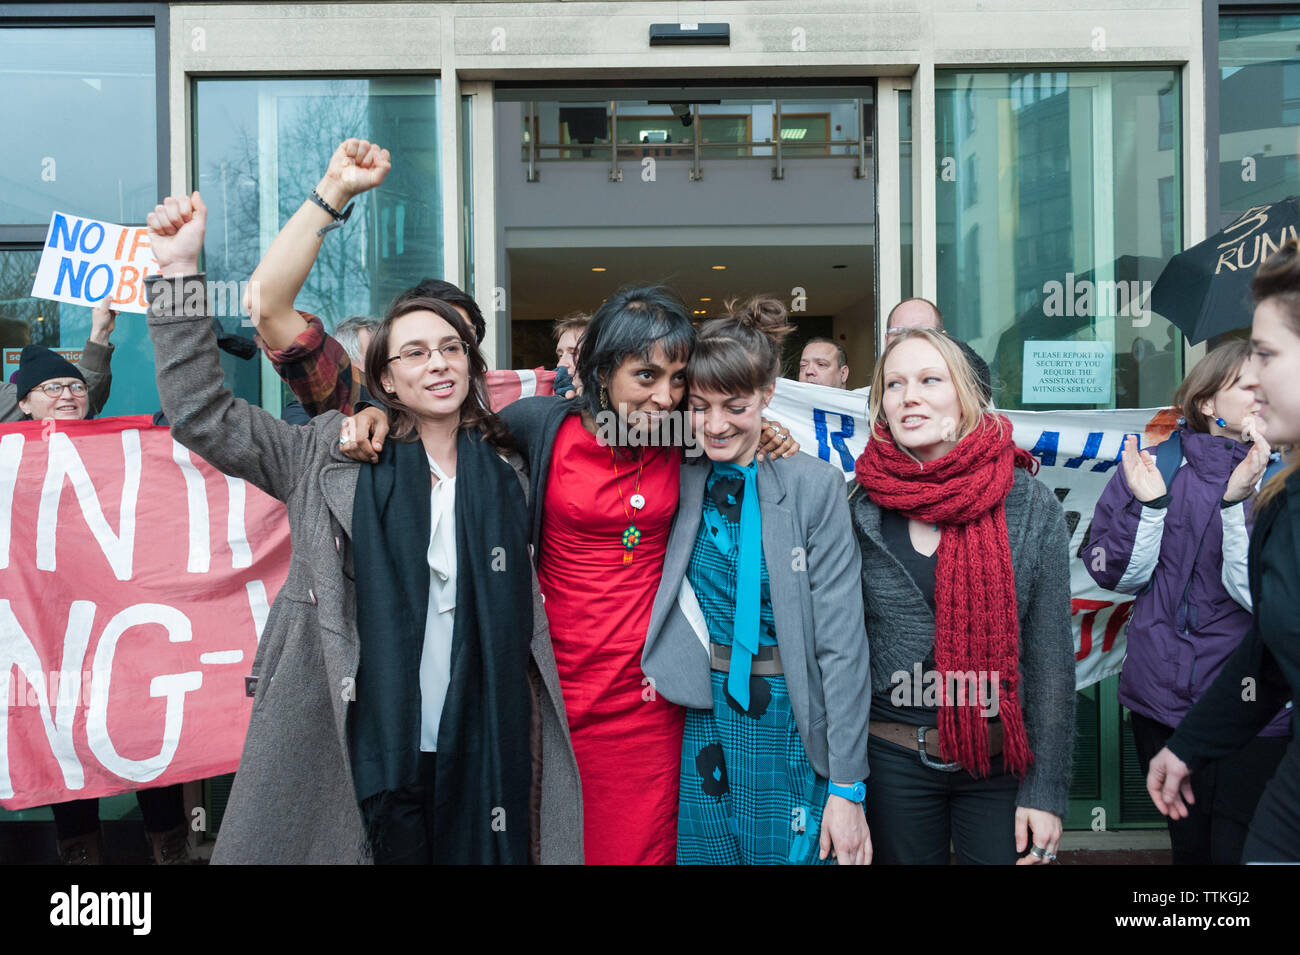 Willesden Magistrates' Court, London, UK. 25th January, 2016. The 13 Heathrow Airport activists together with supporters emerge from Willesden Magistr - Stock Image